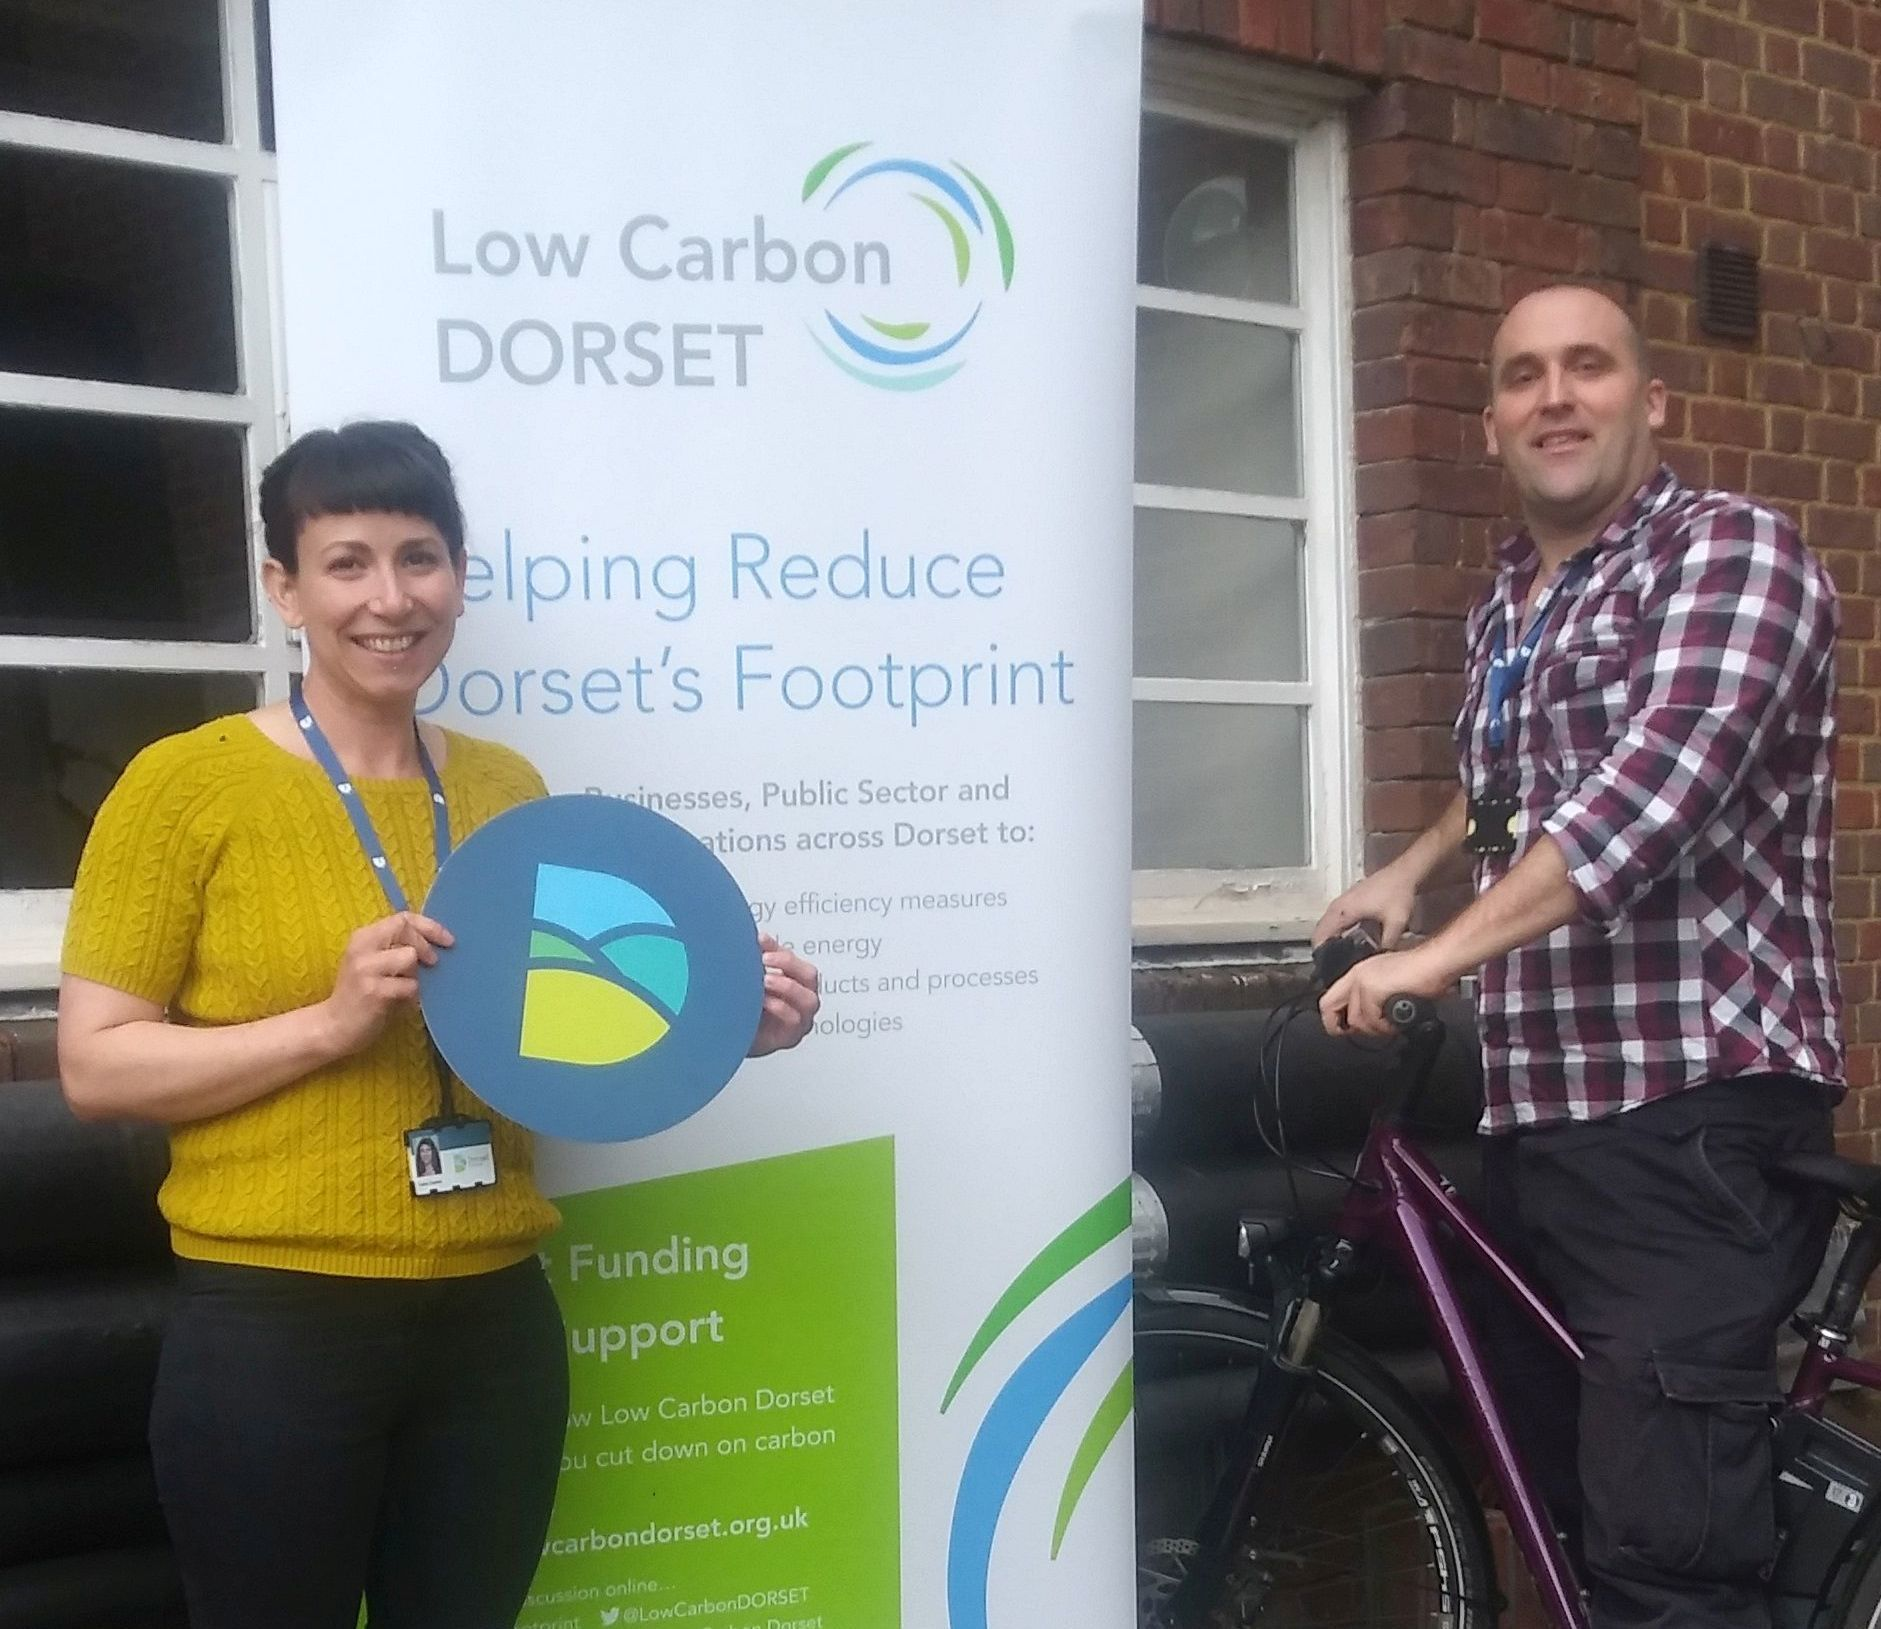 Businesses awarded £1million from 'Low Carbon Dorset' programme